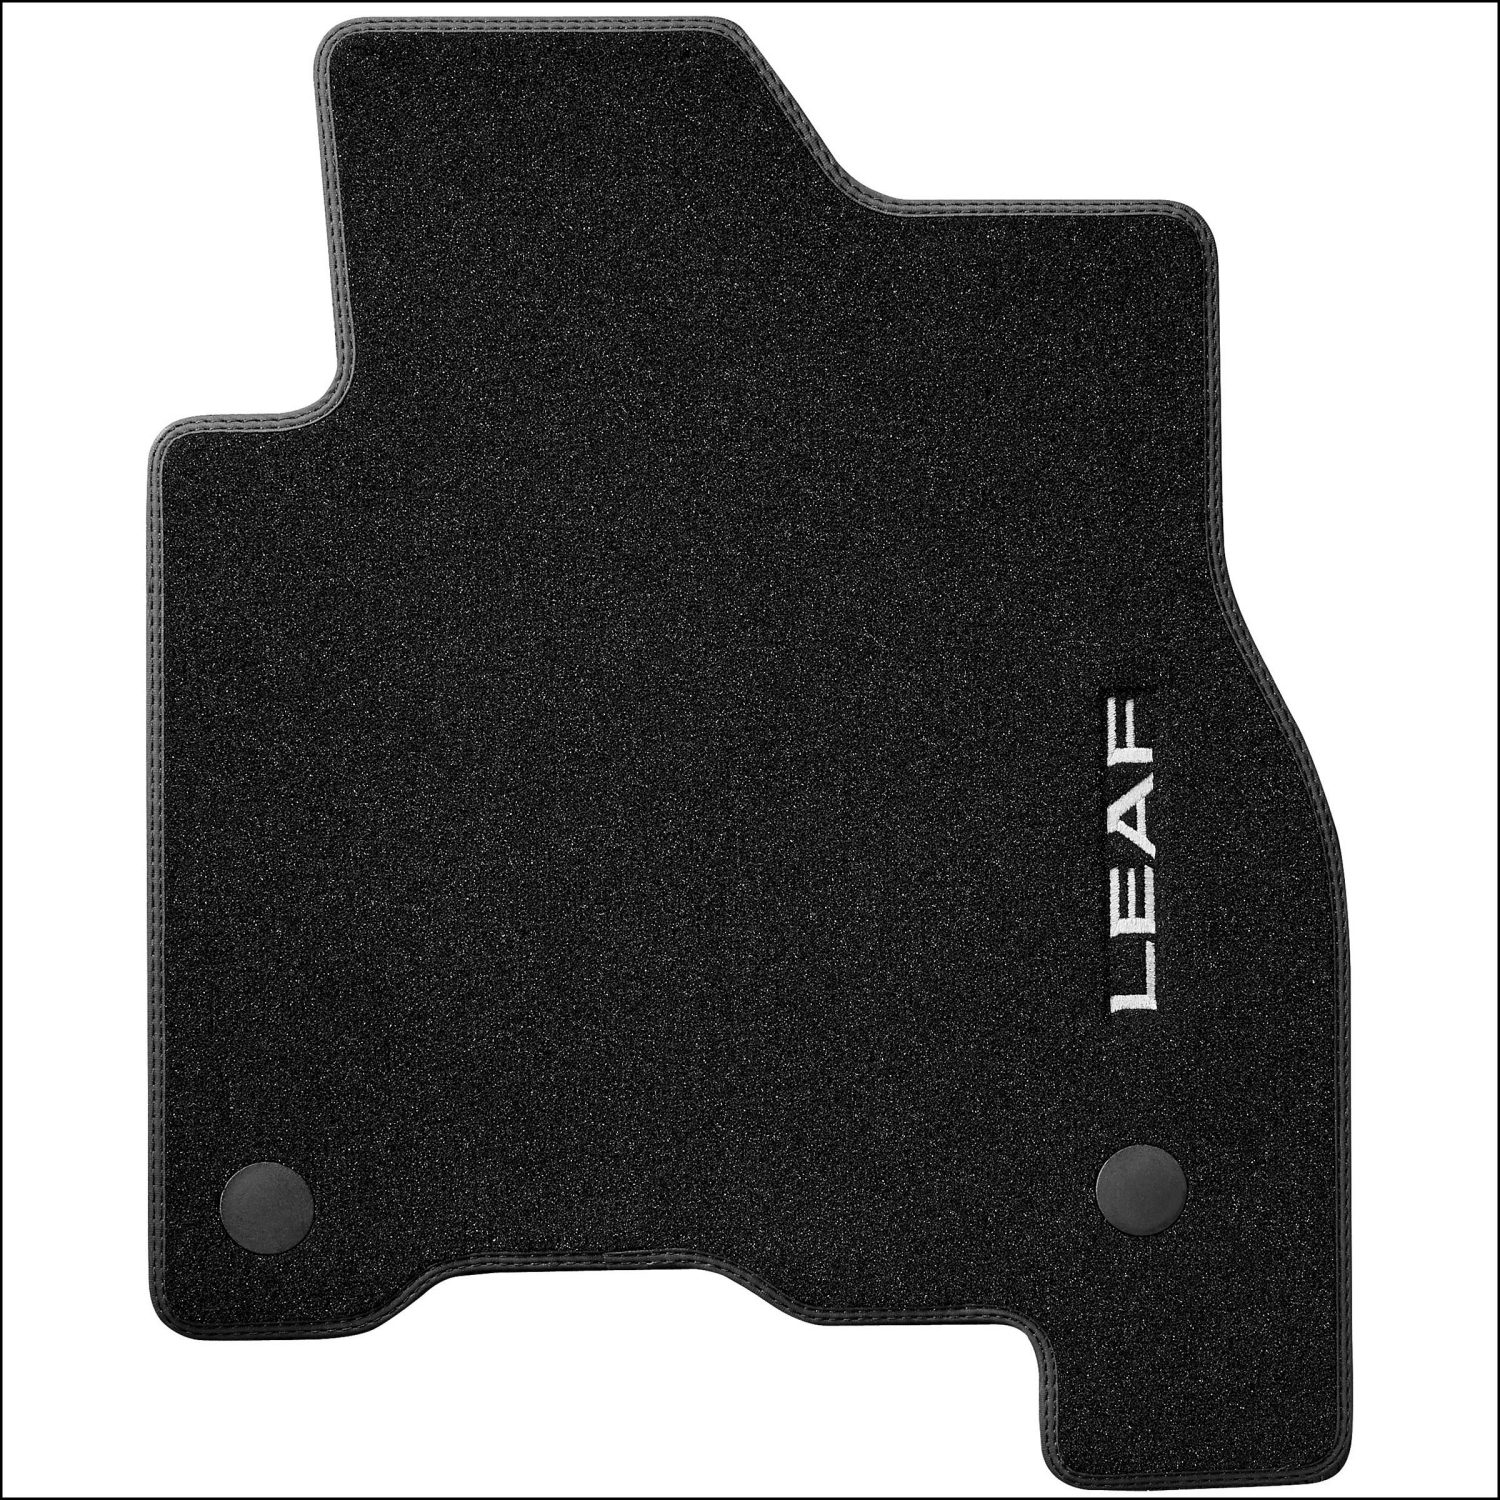 Nissan LEAF velour mat double stitching black